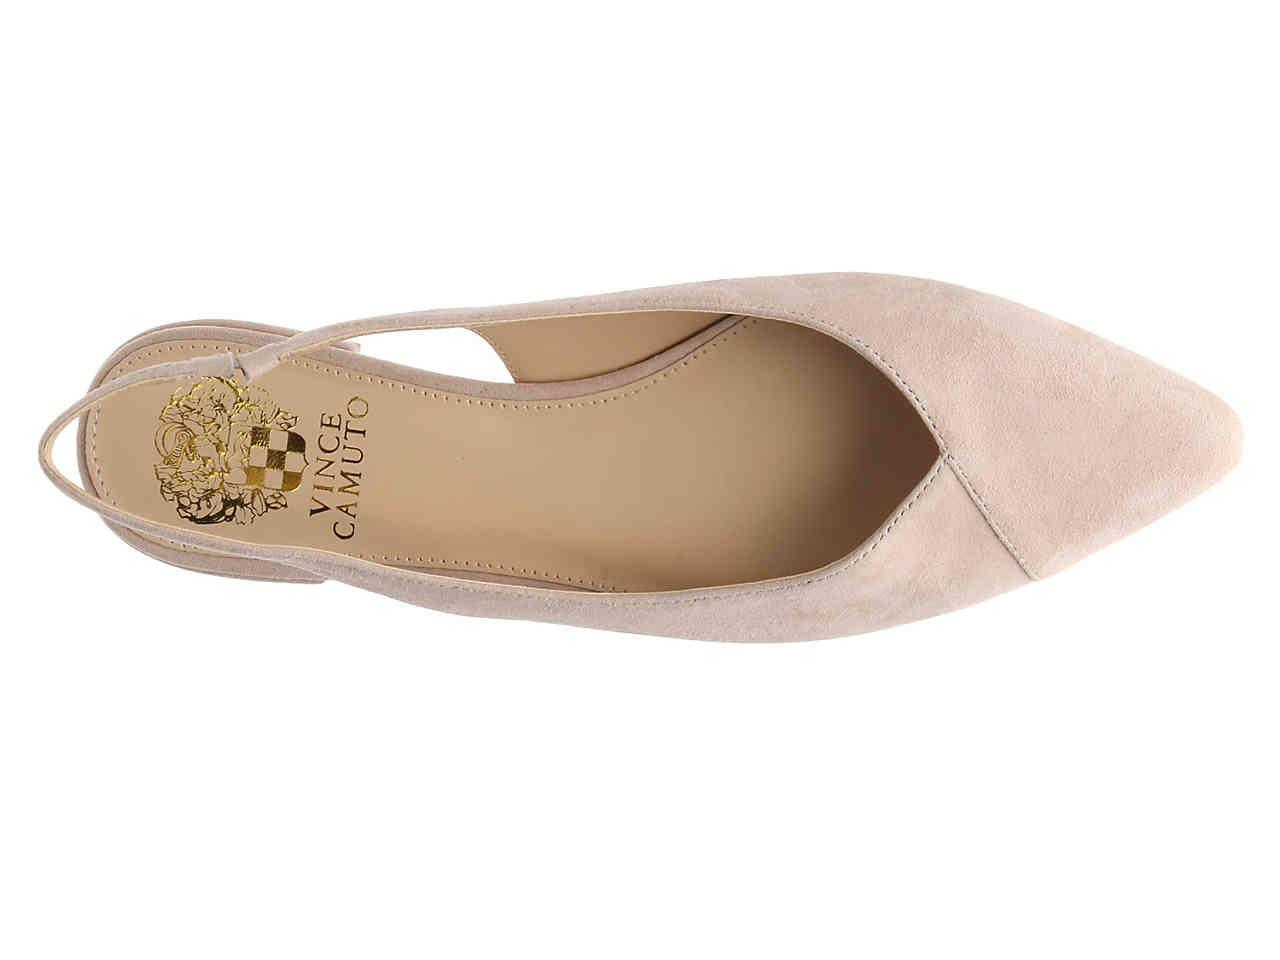 33b9fdbf341 Lyst - Vince Camuto Jasenia Flat in Natural